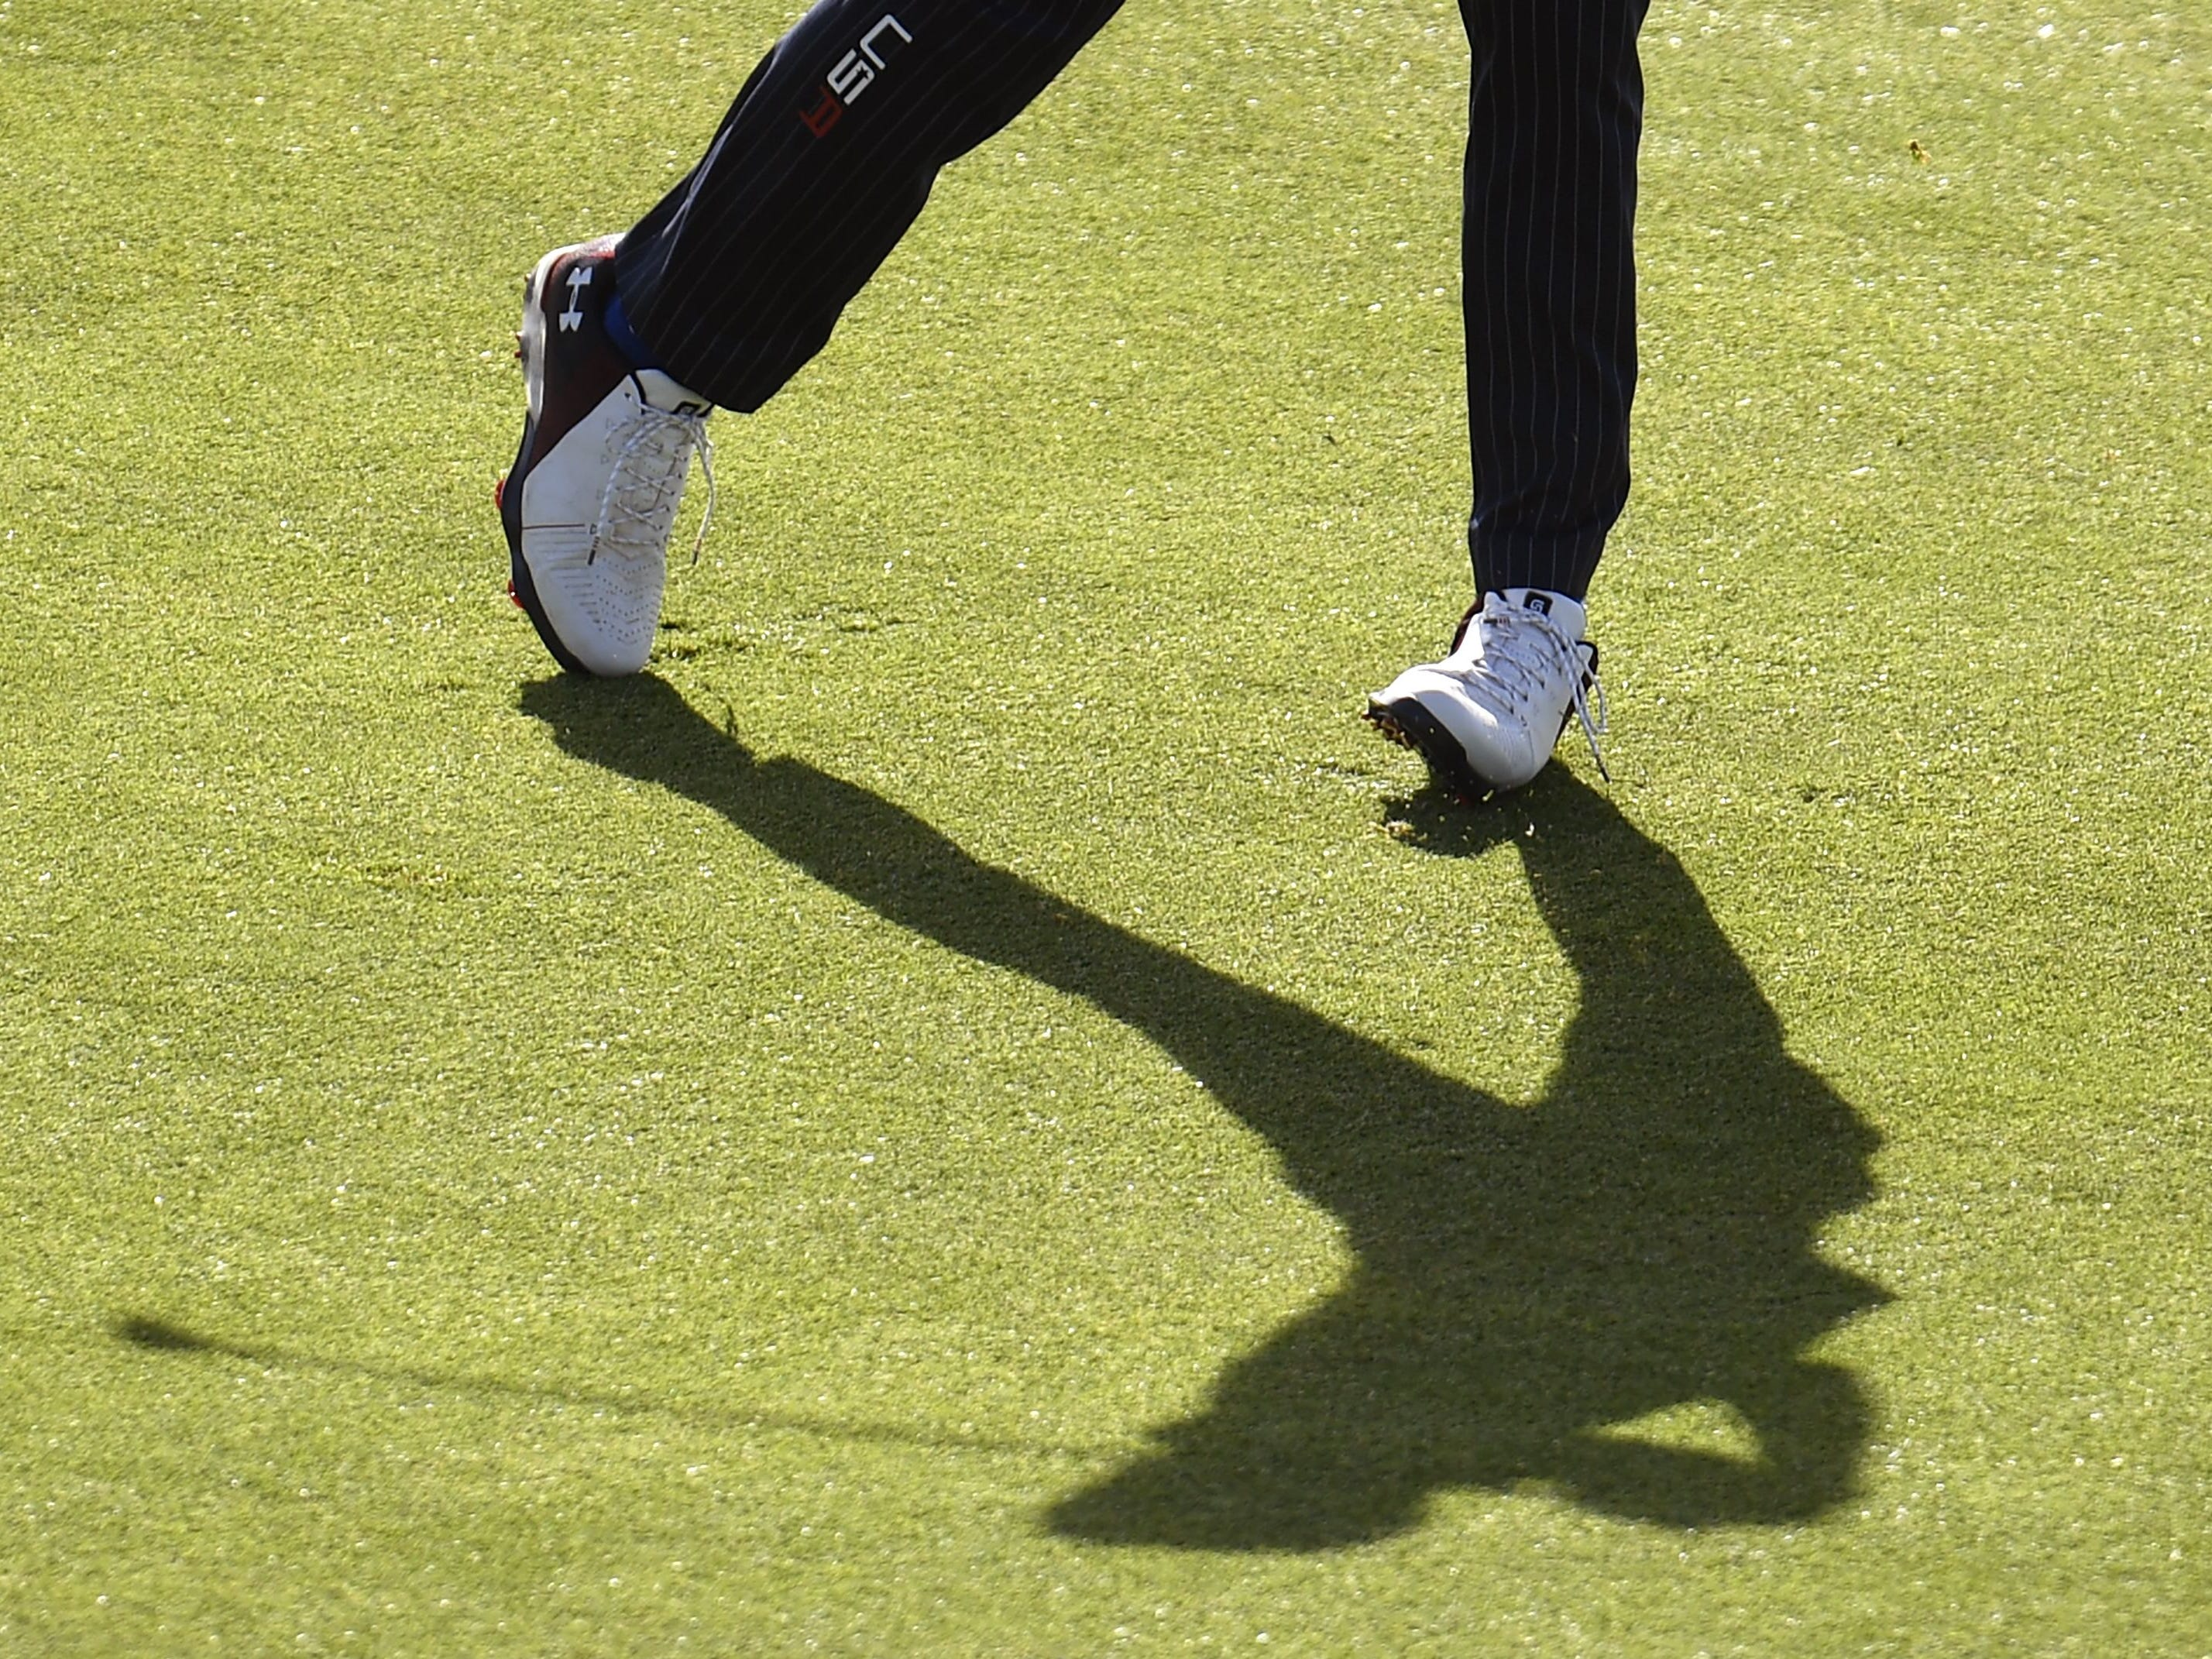 Jordan Spieth's shadow tags along on an approach shot during Saturday's fourball matches.